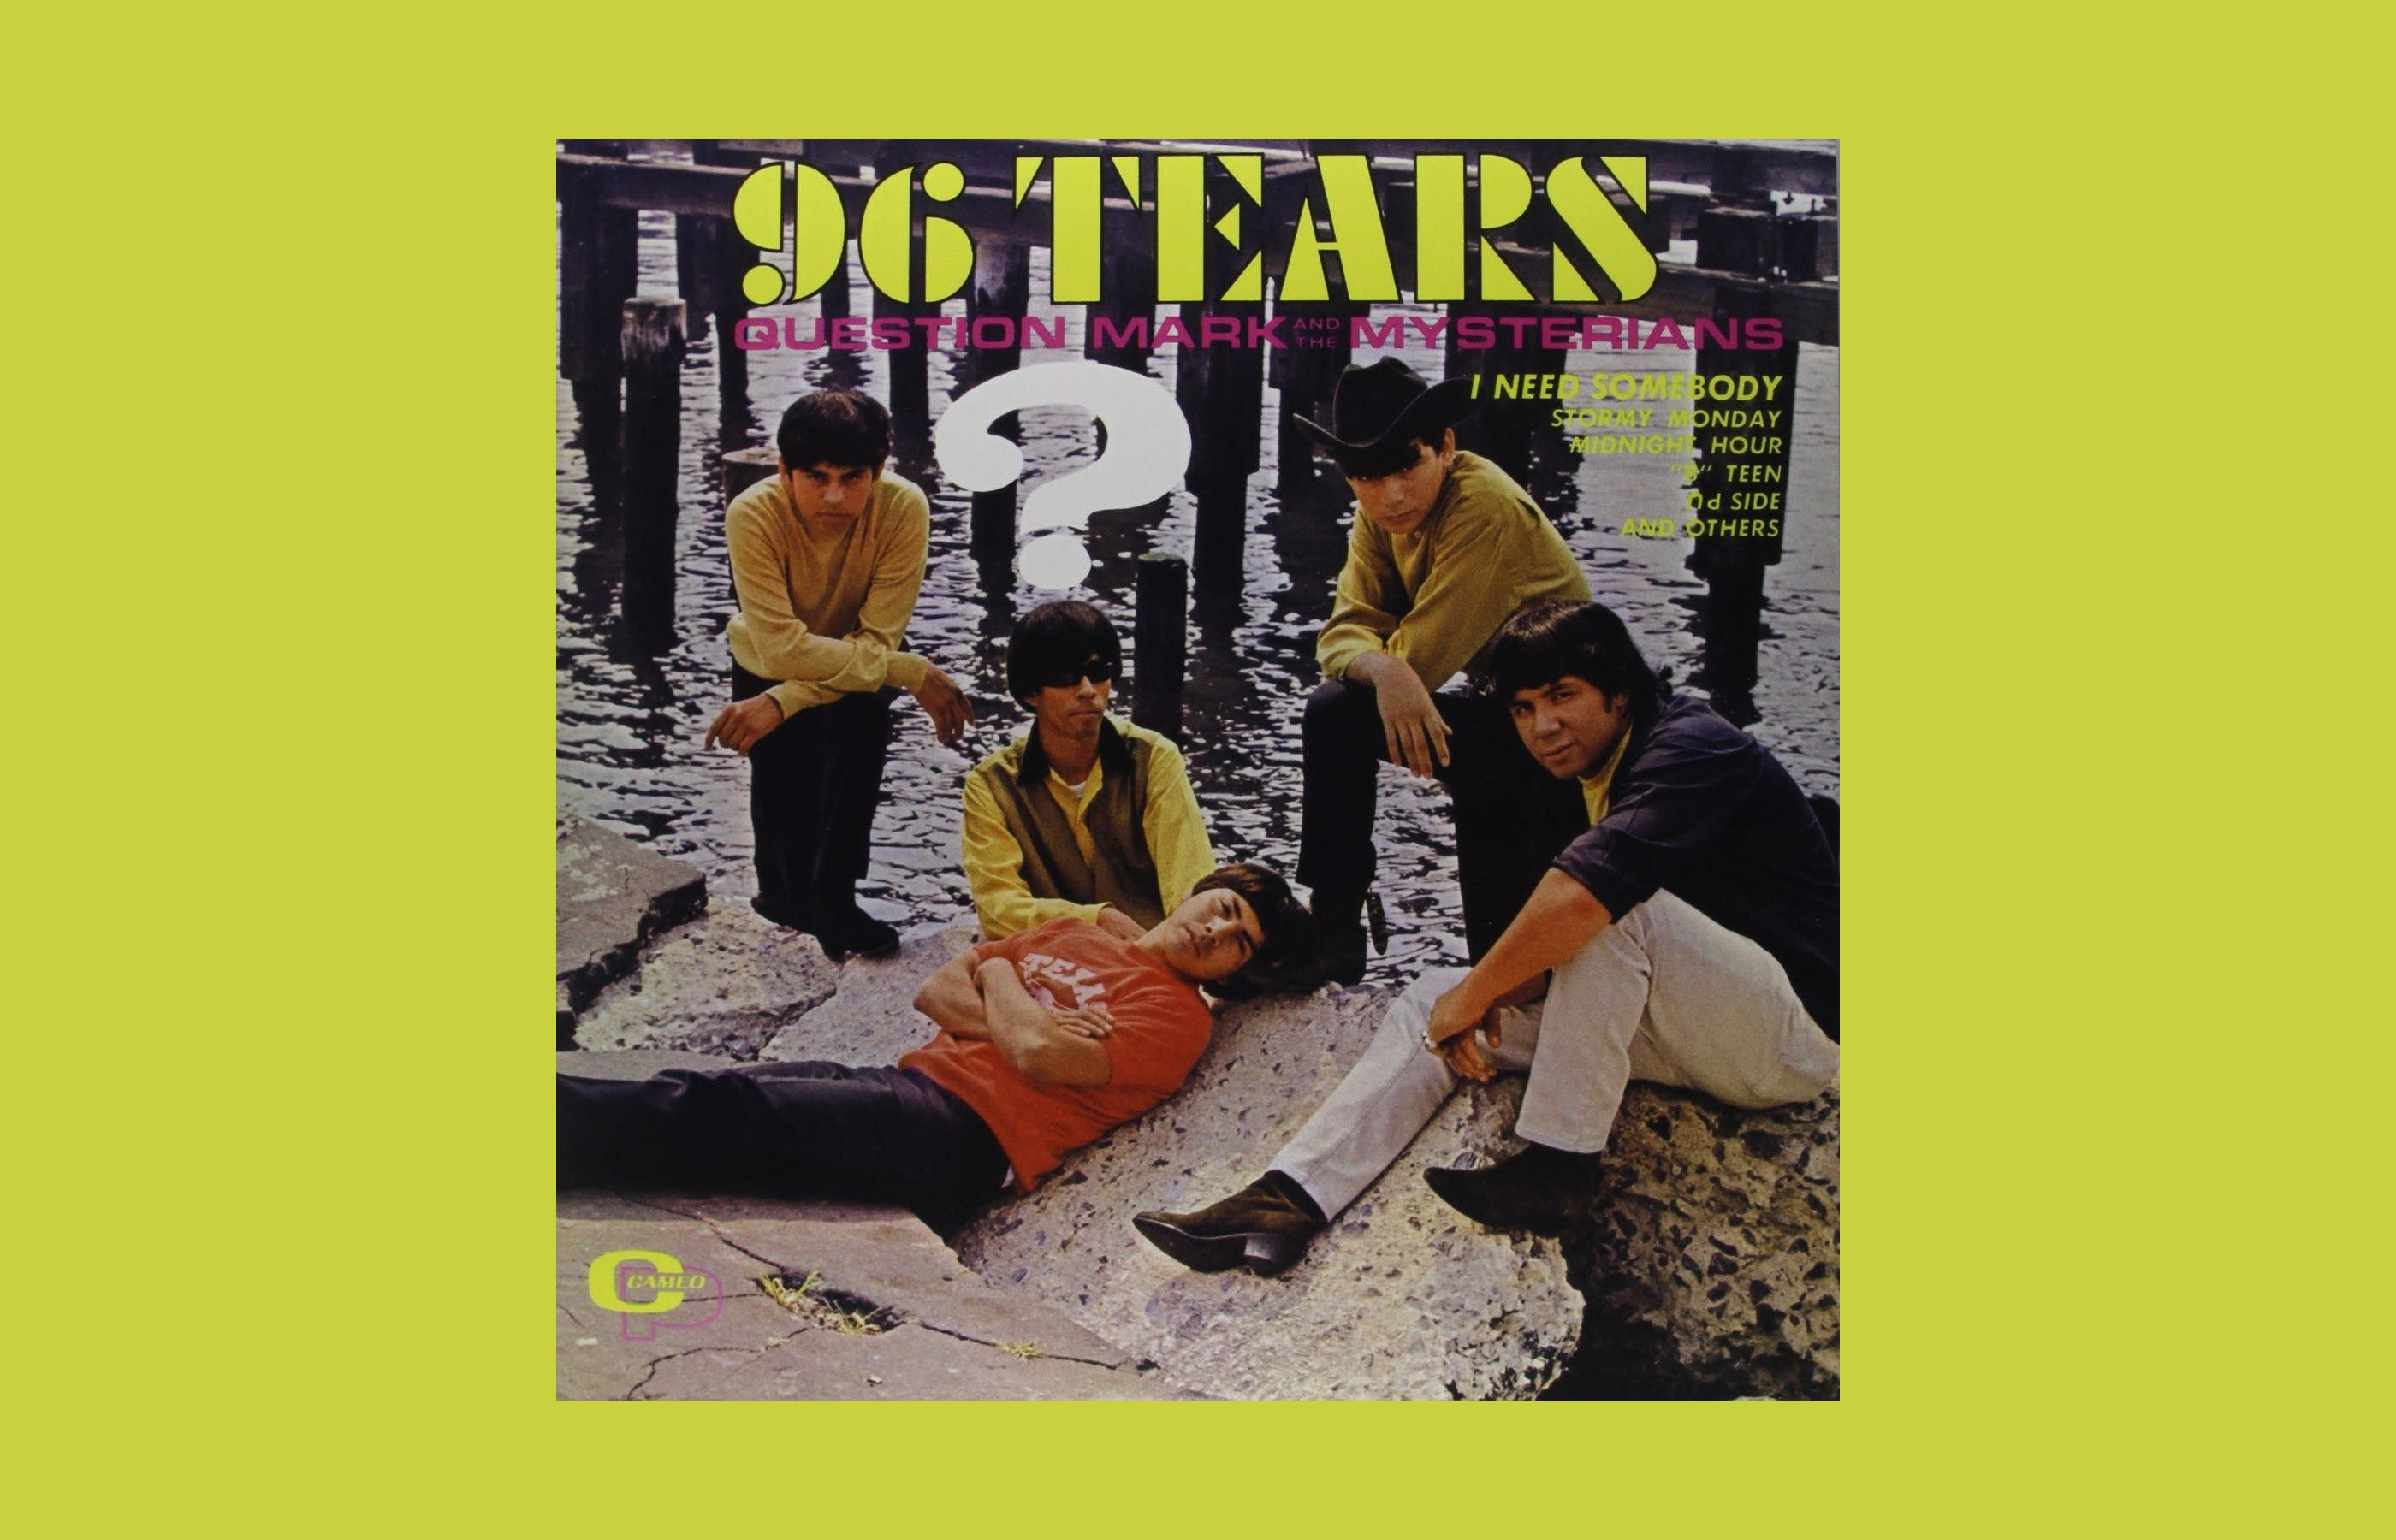 """The 1966 album """"96 Tears"""" from ? and the Mysterians."""